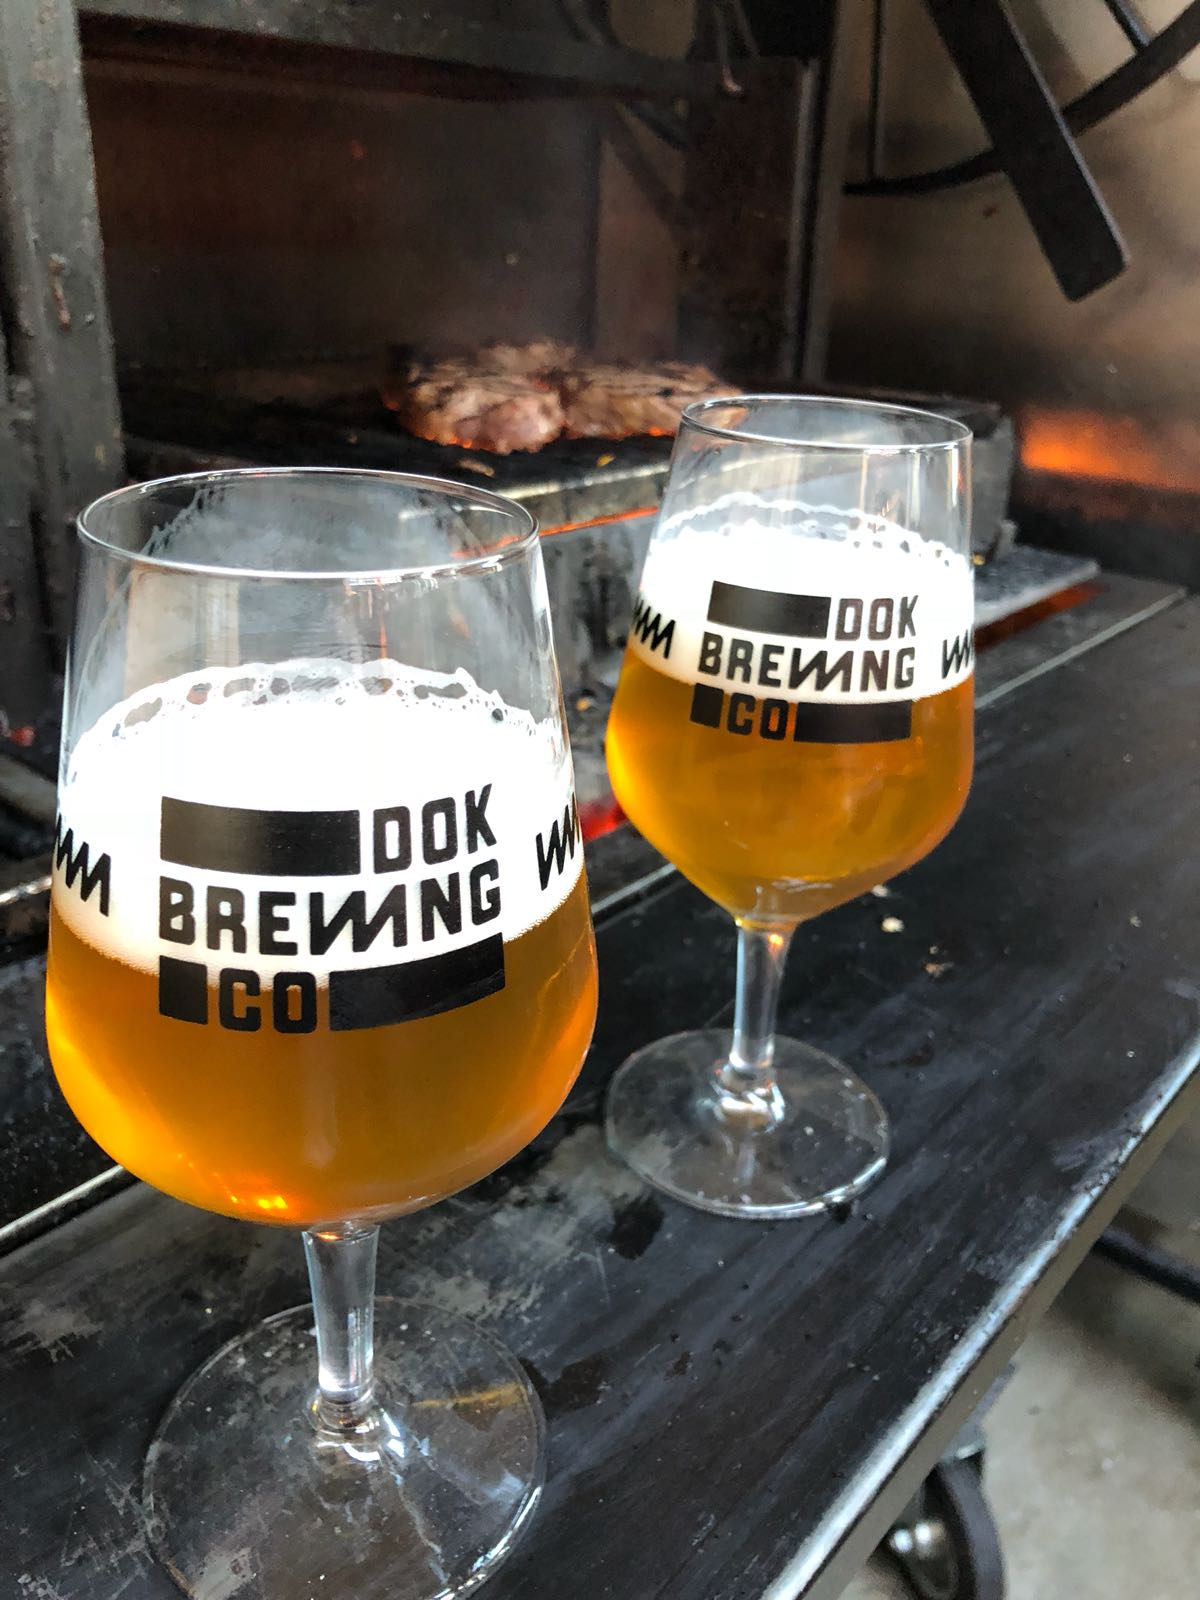 https://www.dokbrewingcompany.be/wp-content/uploads/2018/07/Dok-brewing-company-glassware-1.jpg